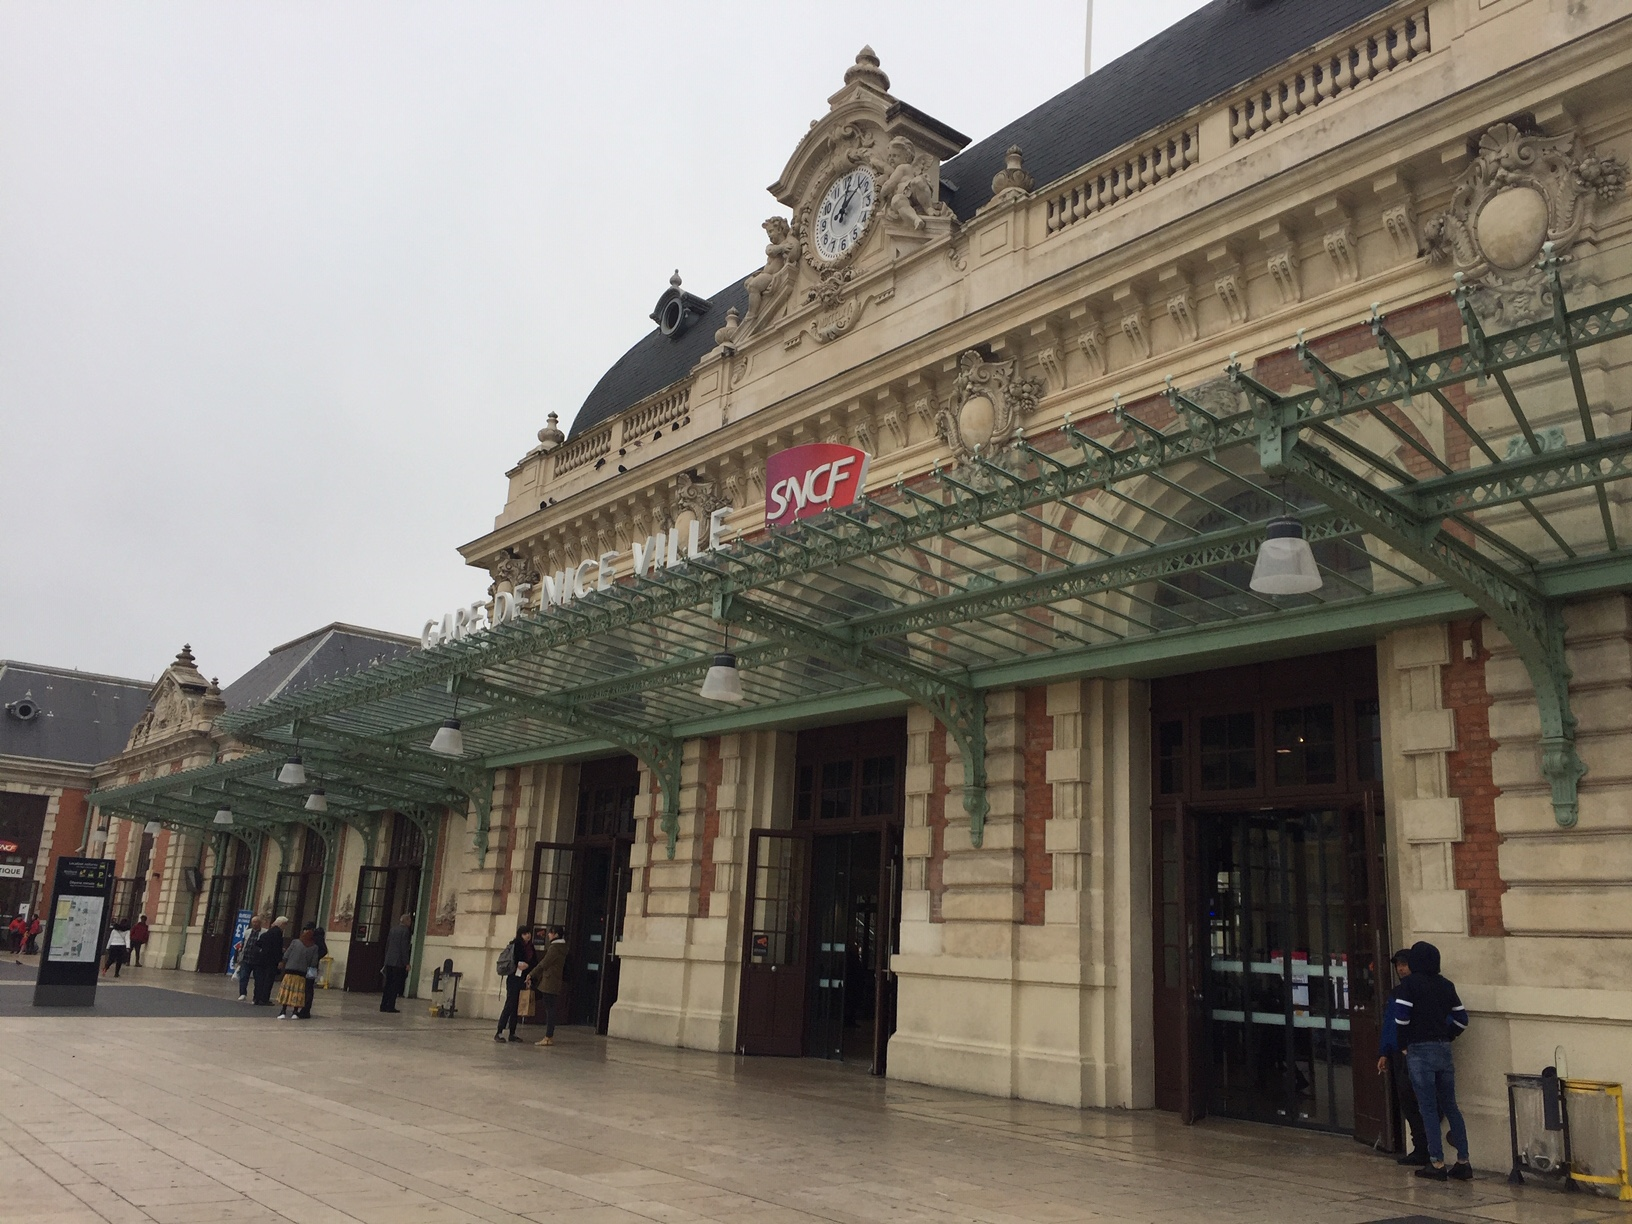 A View of the Nice Ville Train Station